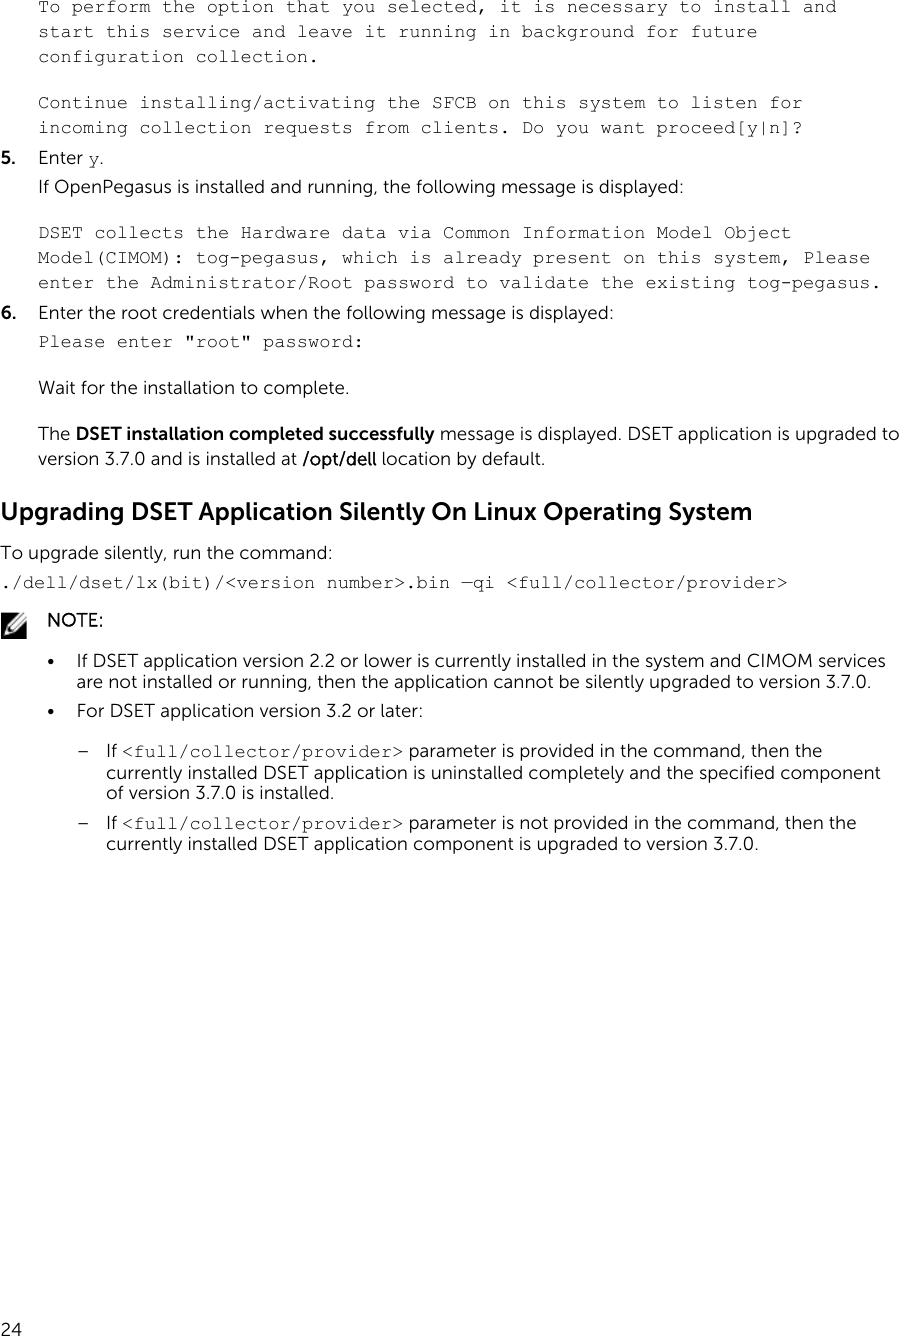 Dell 3 7 0 System E Support Tool (DSET) Version Installation